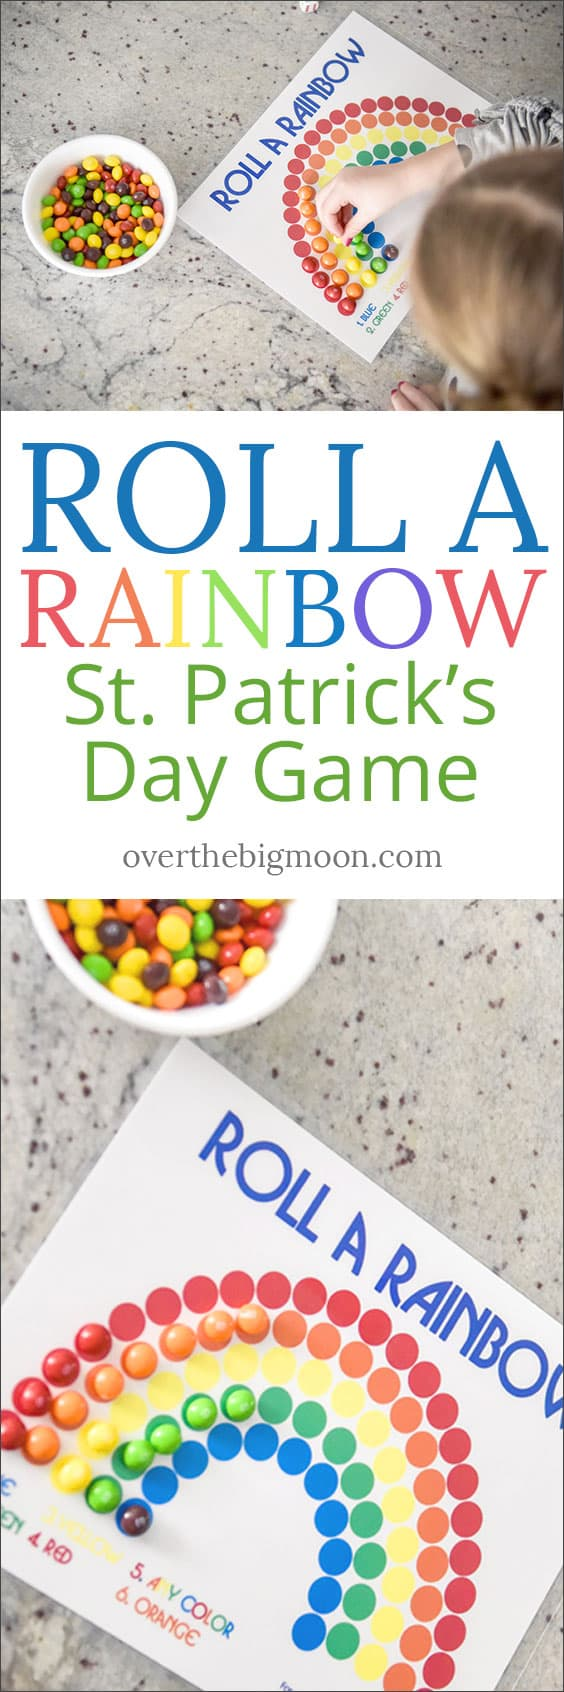 Roll A Rainbow - St. Patrick's Day Game. Kids love this game, it's so simple and an easy activity to play on St. Patricks Day or to practice colors!